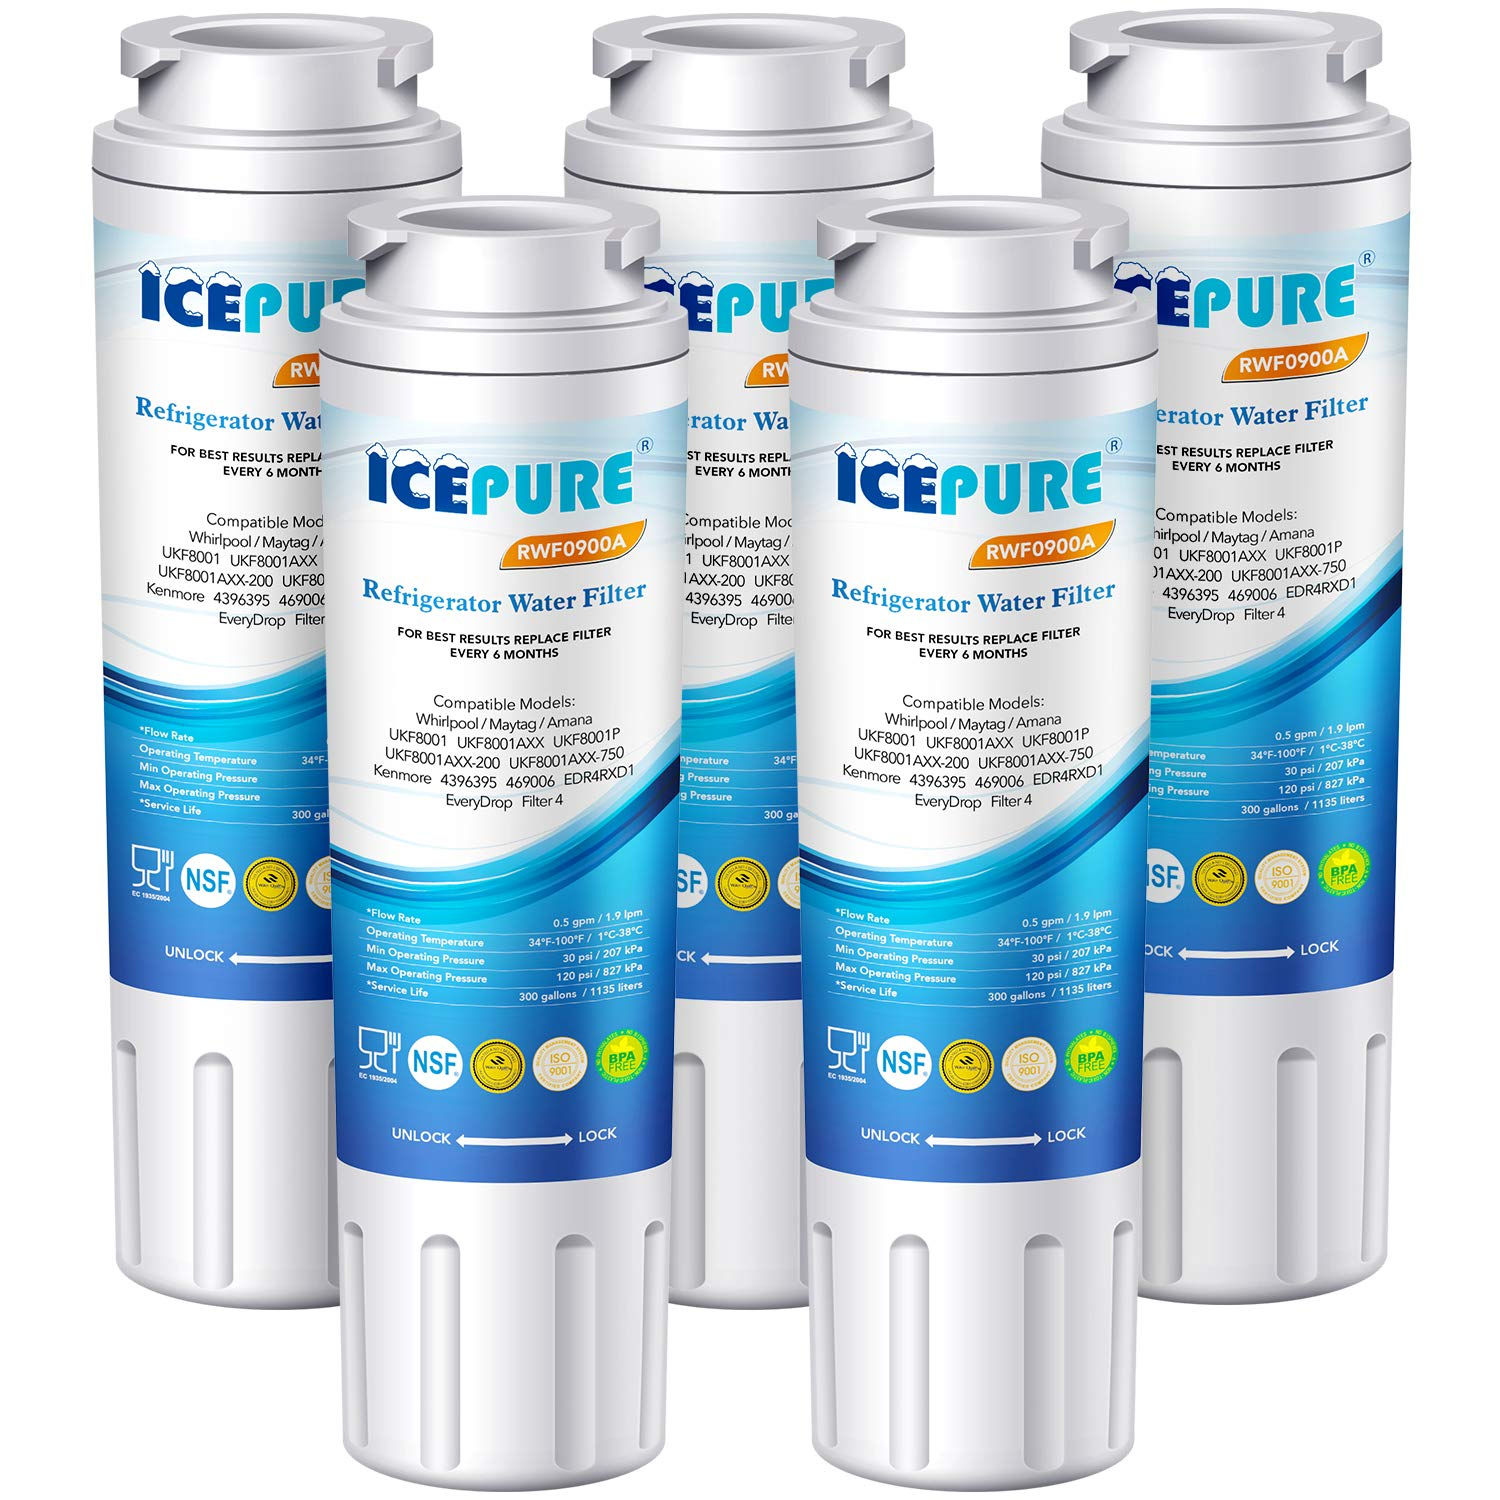 Icepure Refrigerator Water Filter, Replacement for Maytag UKF8001, PUR, Jenn-Air, Filter 4, 4396395, UKF8001AXX, UKF8001AXX-200, UKF8001AXX-750, 469006, RWF0900A 5 PACK